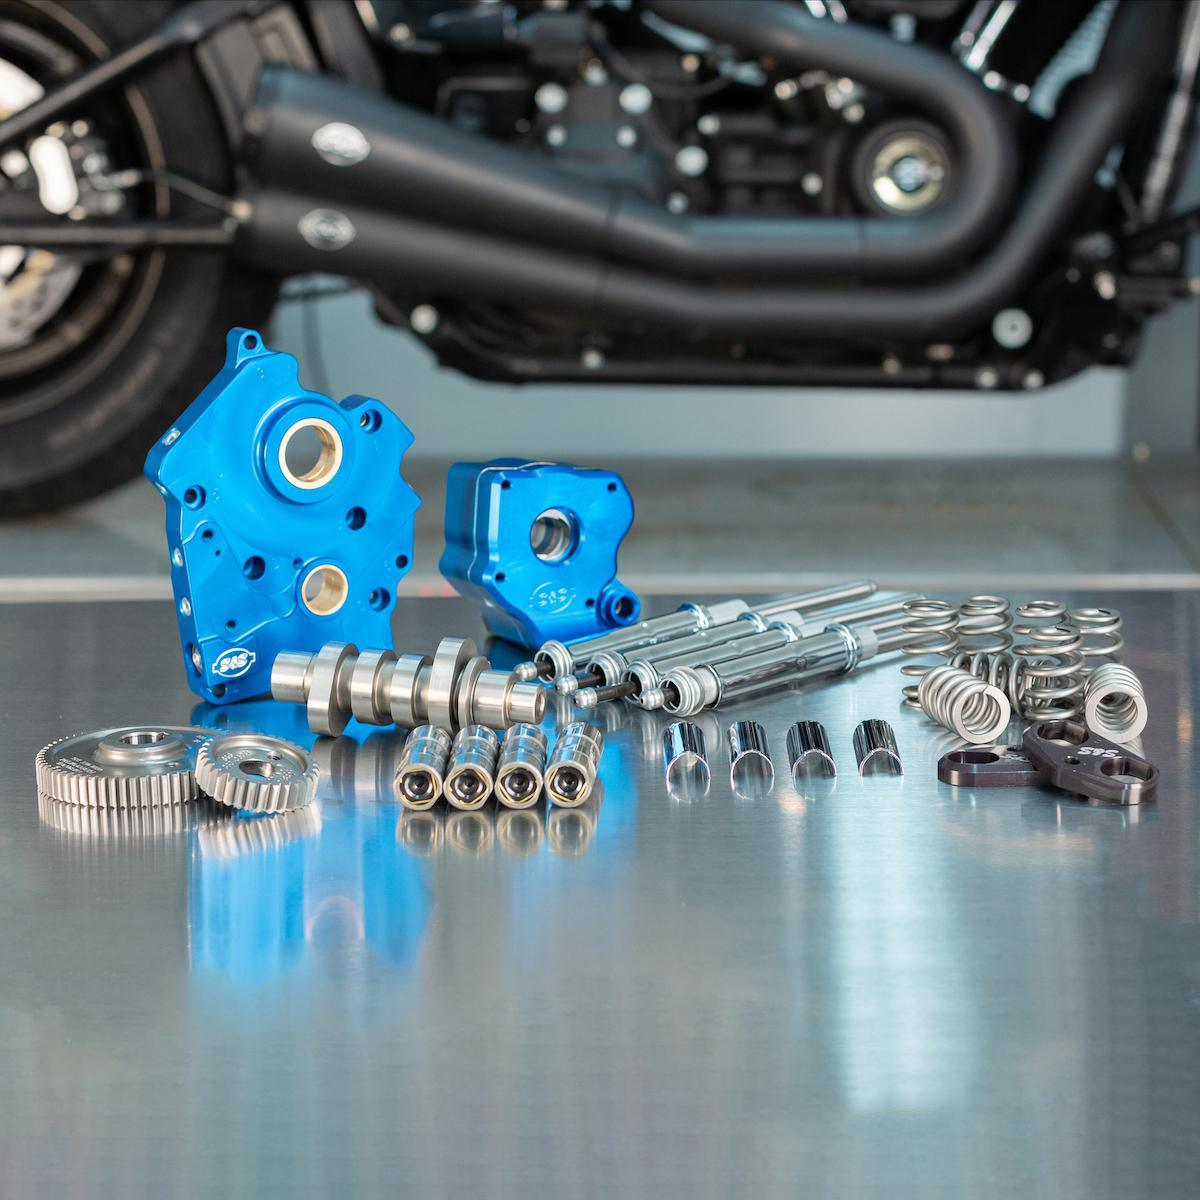 S&S CYCLE - 550 Cam Chest Kits for the Milwaukee-Eight Engine